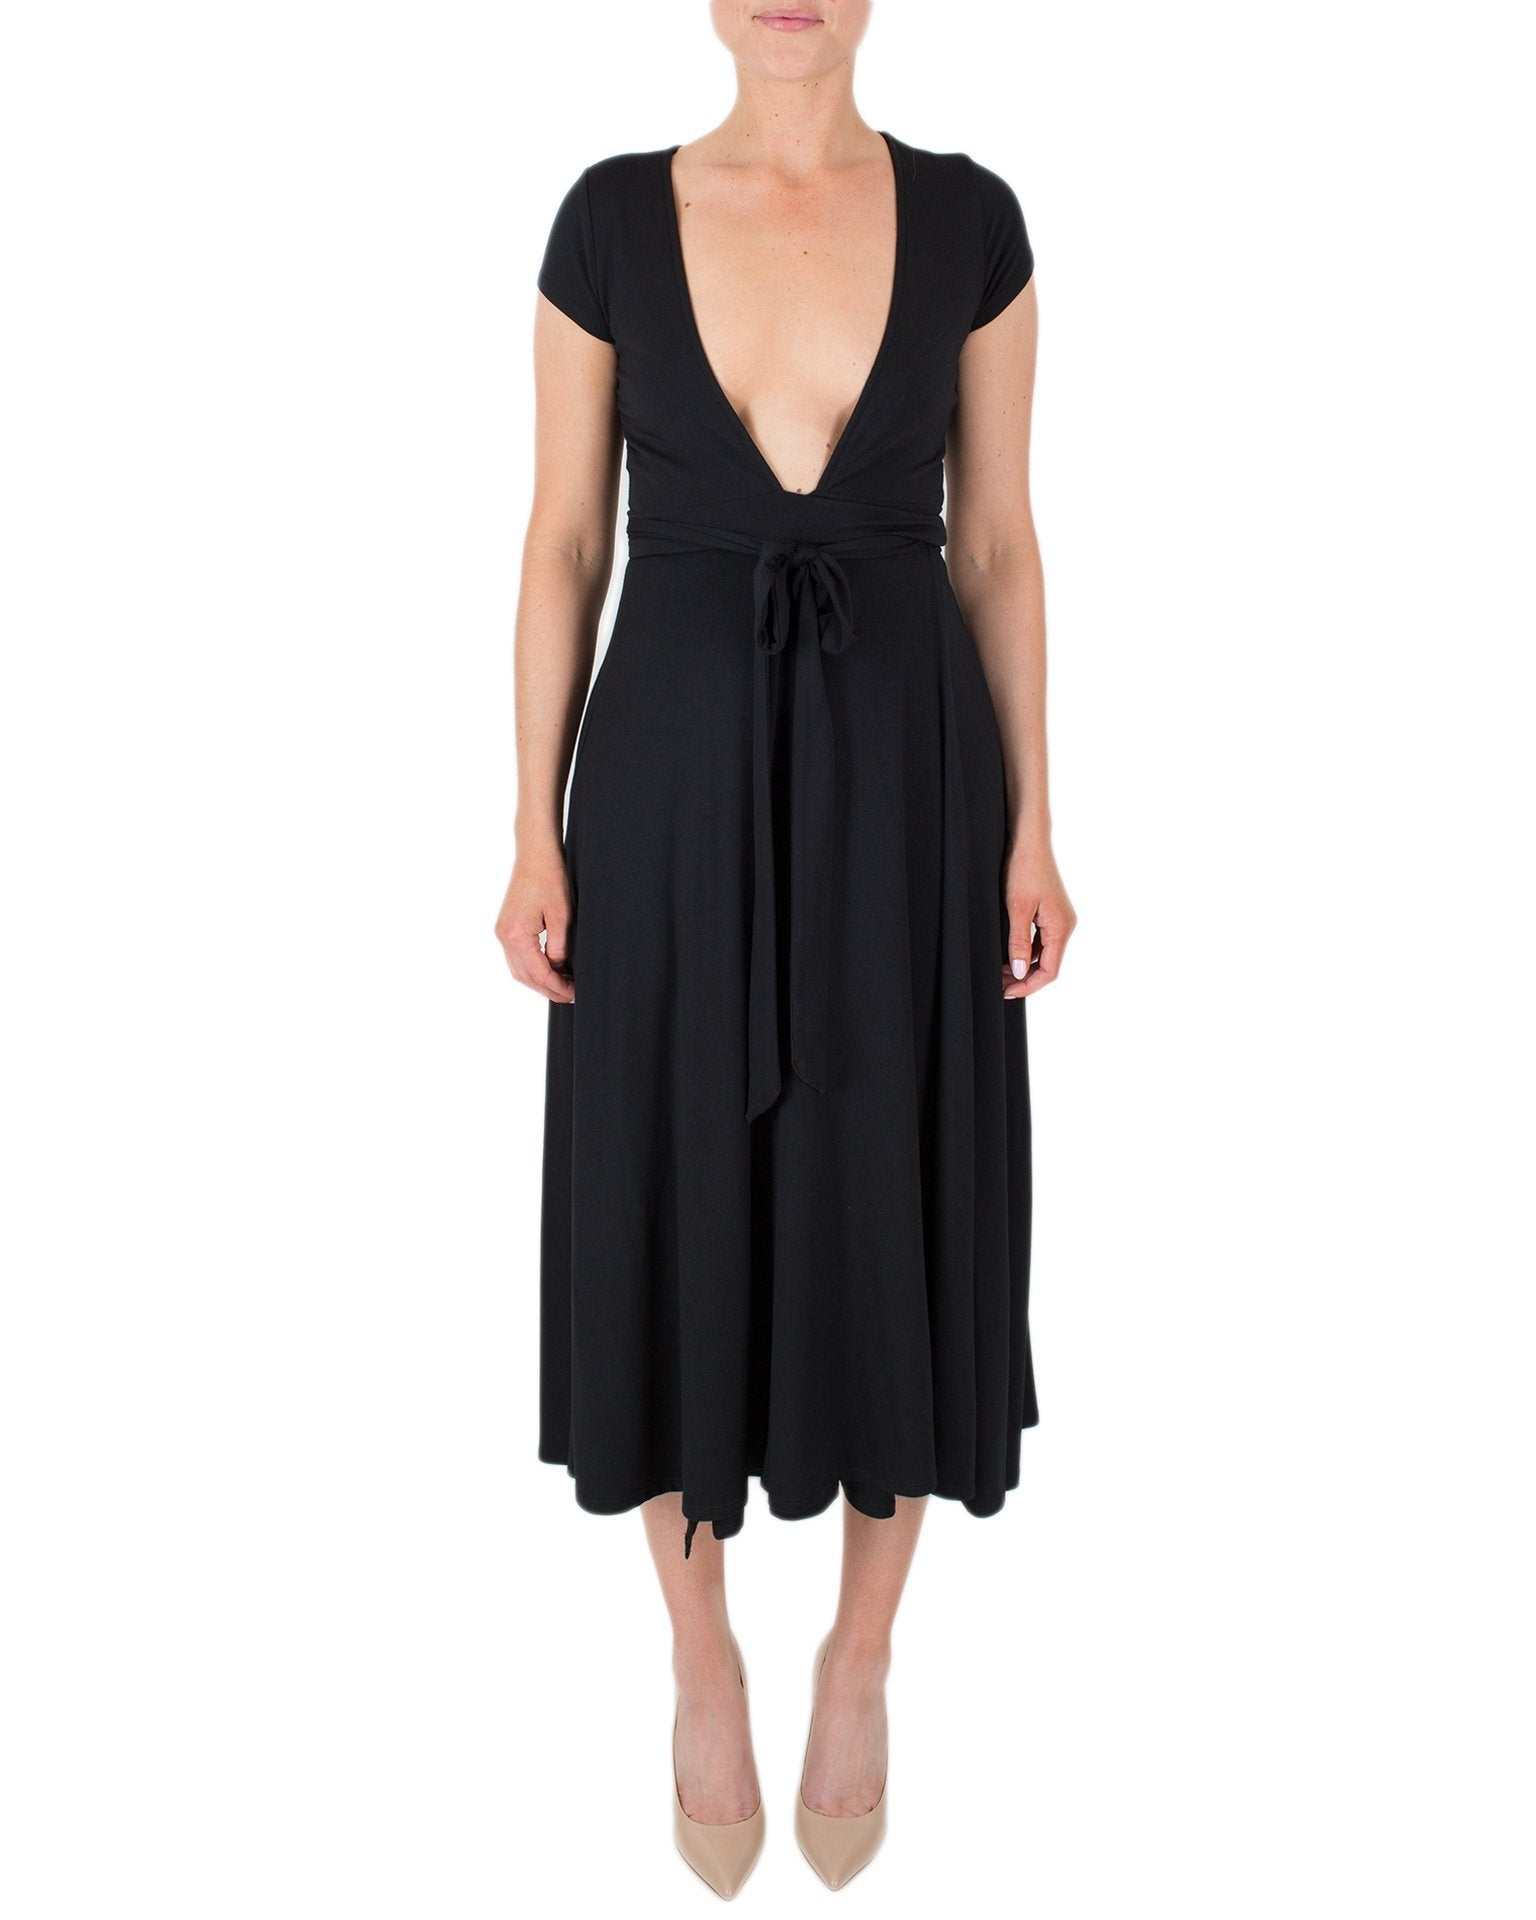 Rachel Pally Clothing Black / XS Kylo Dress